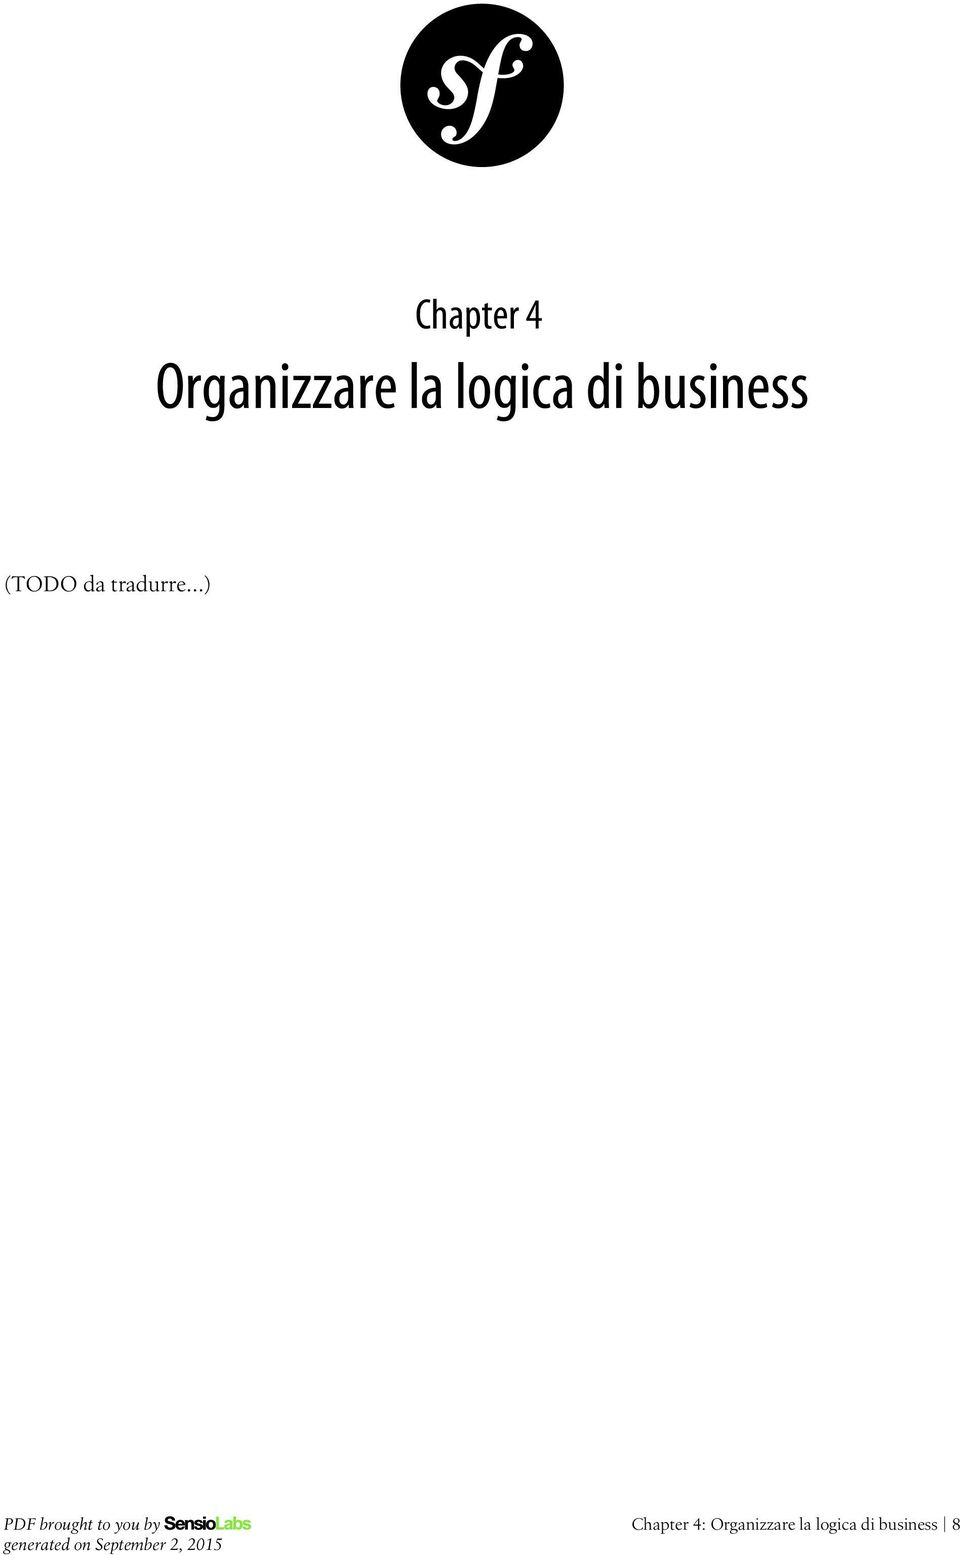 Chapter 4: Organizzare